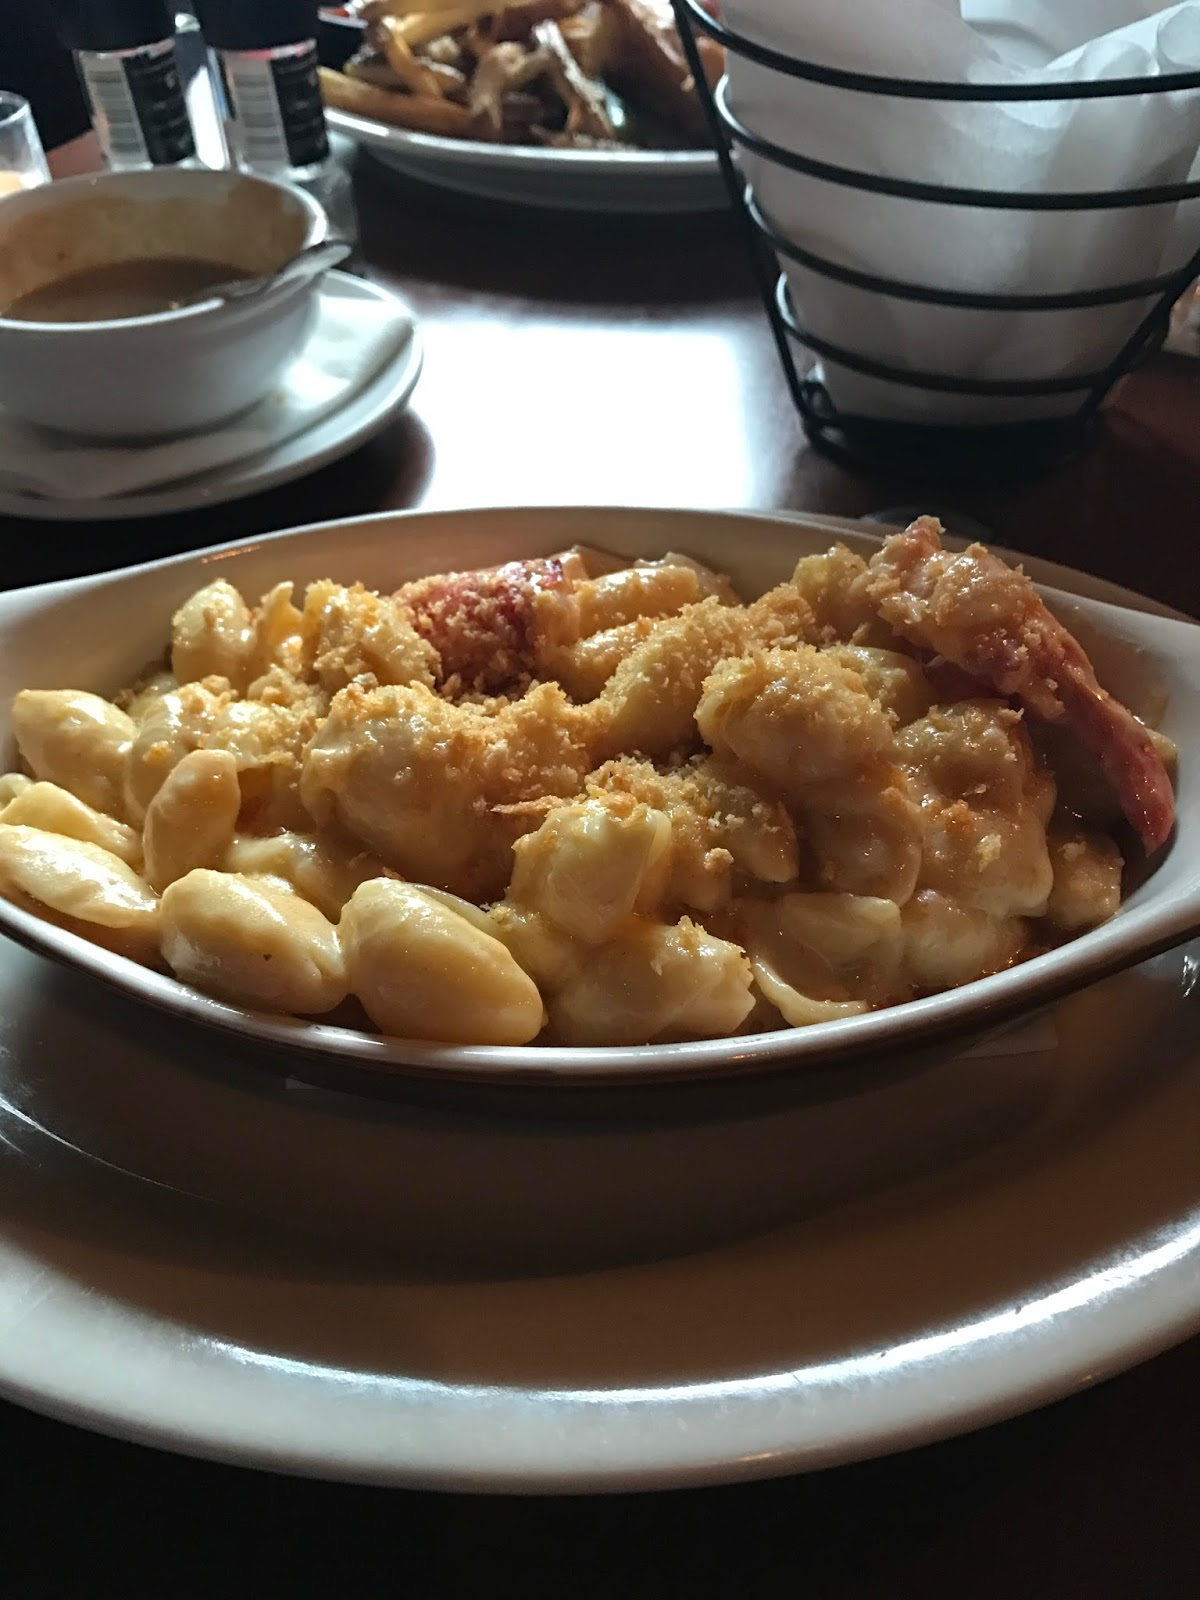 where to eat in portland maine, fresh new england lobster, things to do in portland maine